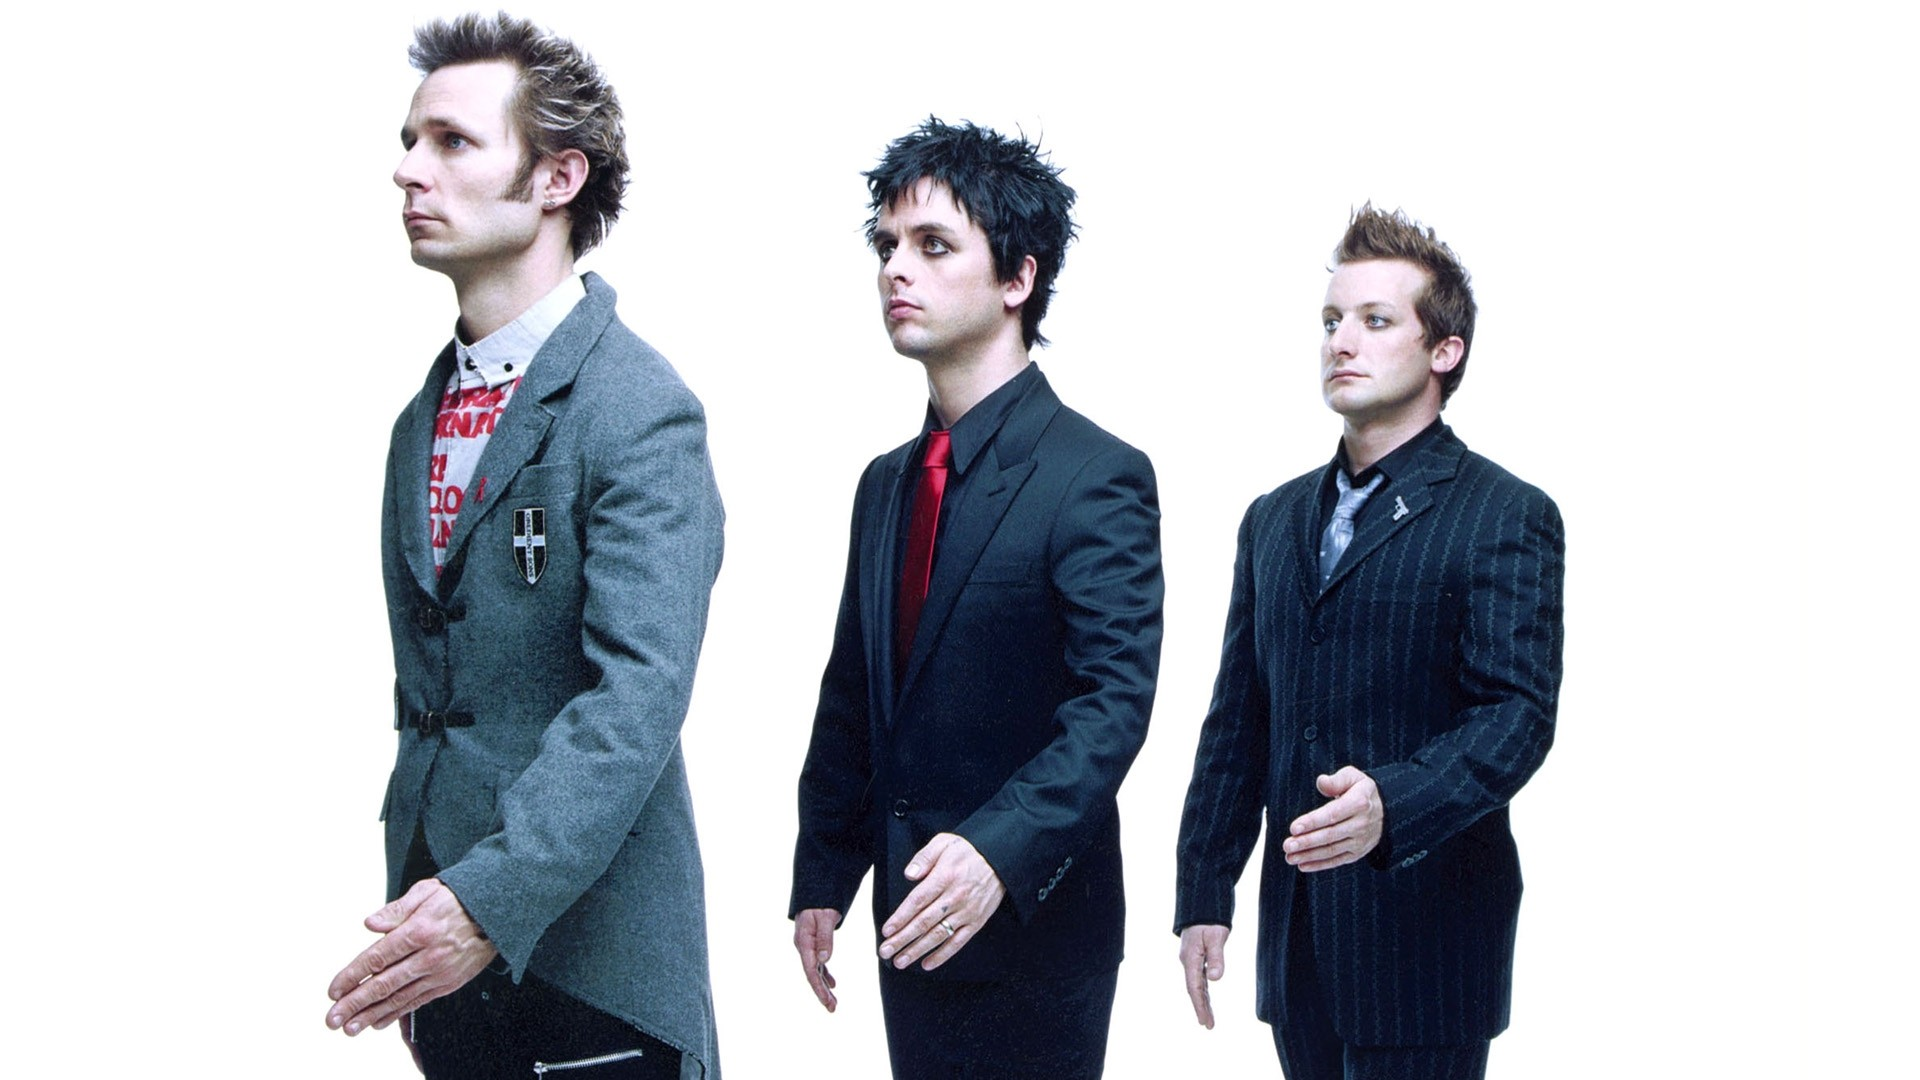 Green Day Wallpaper image hd